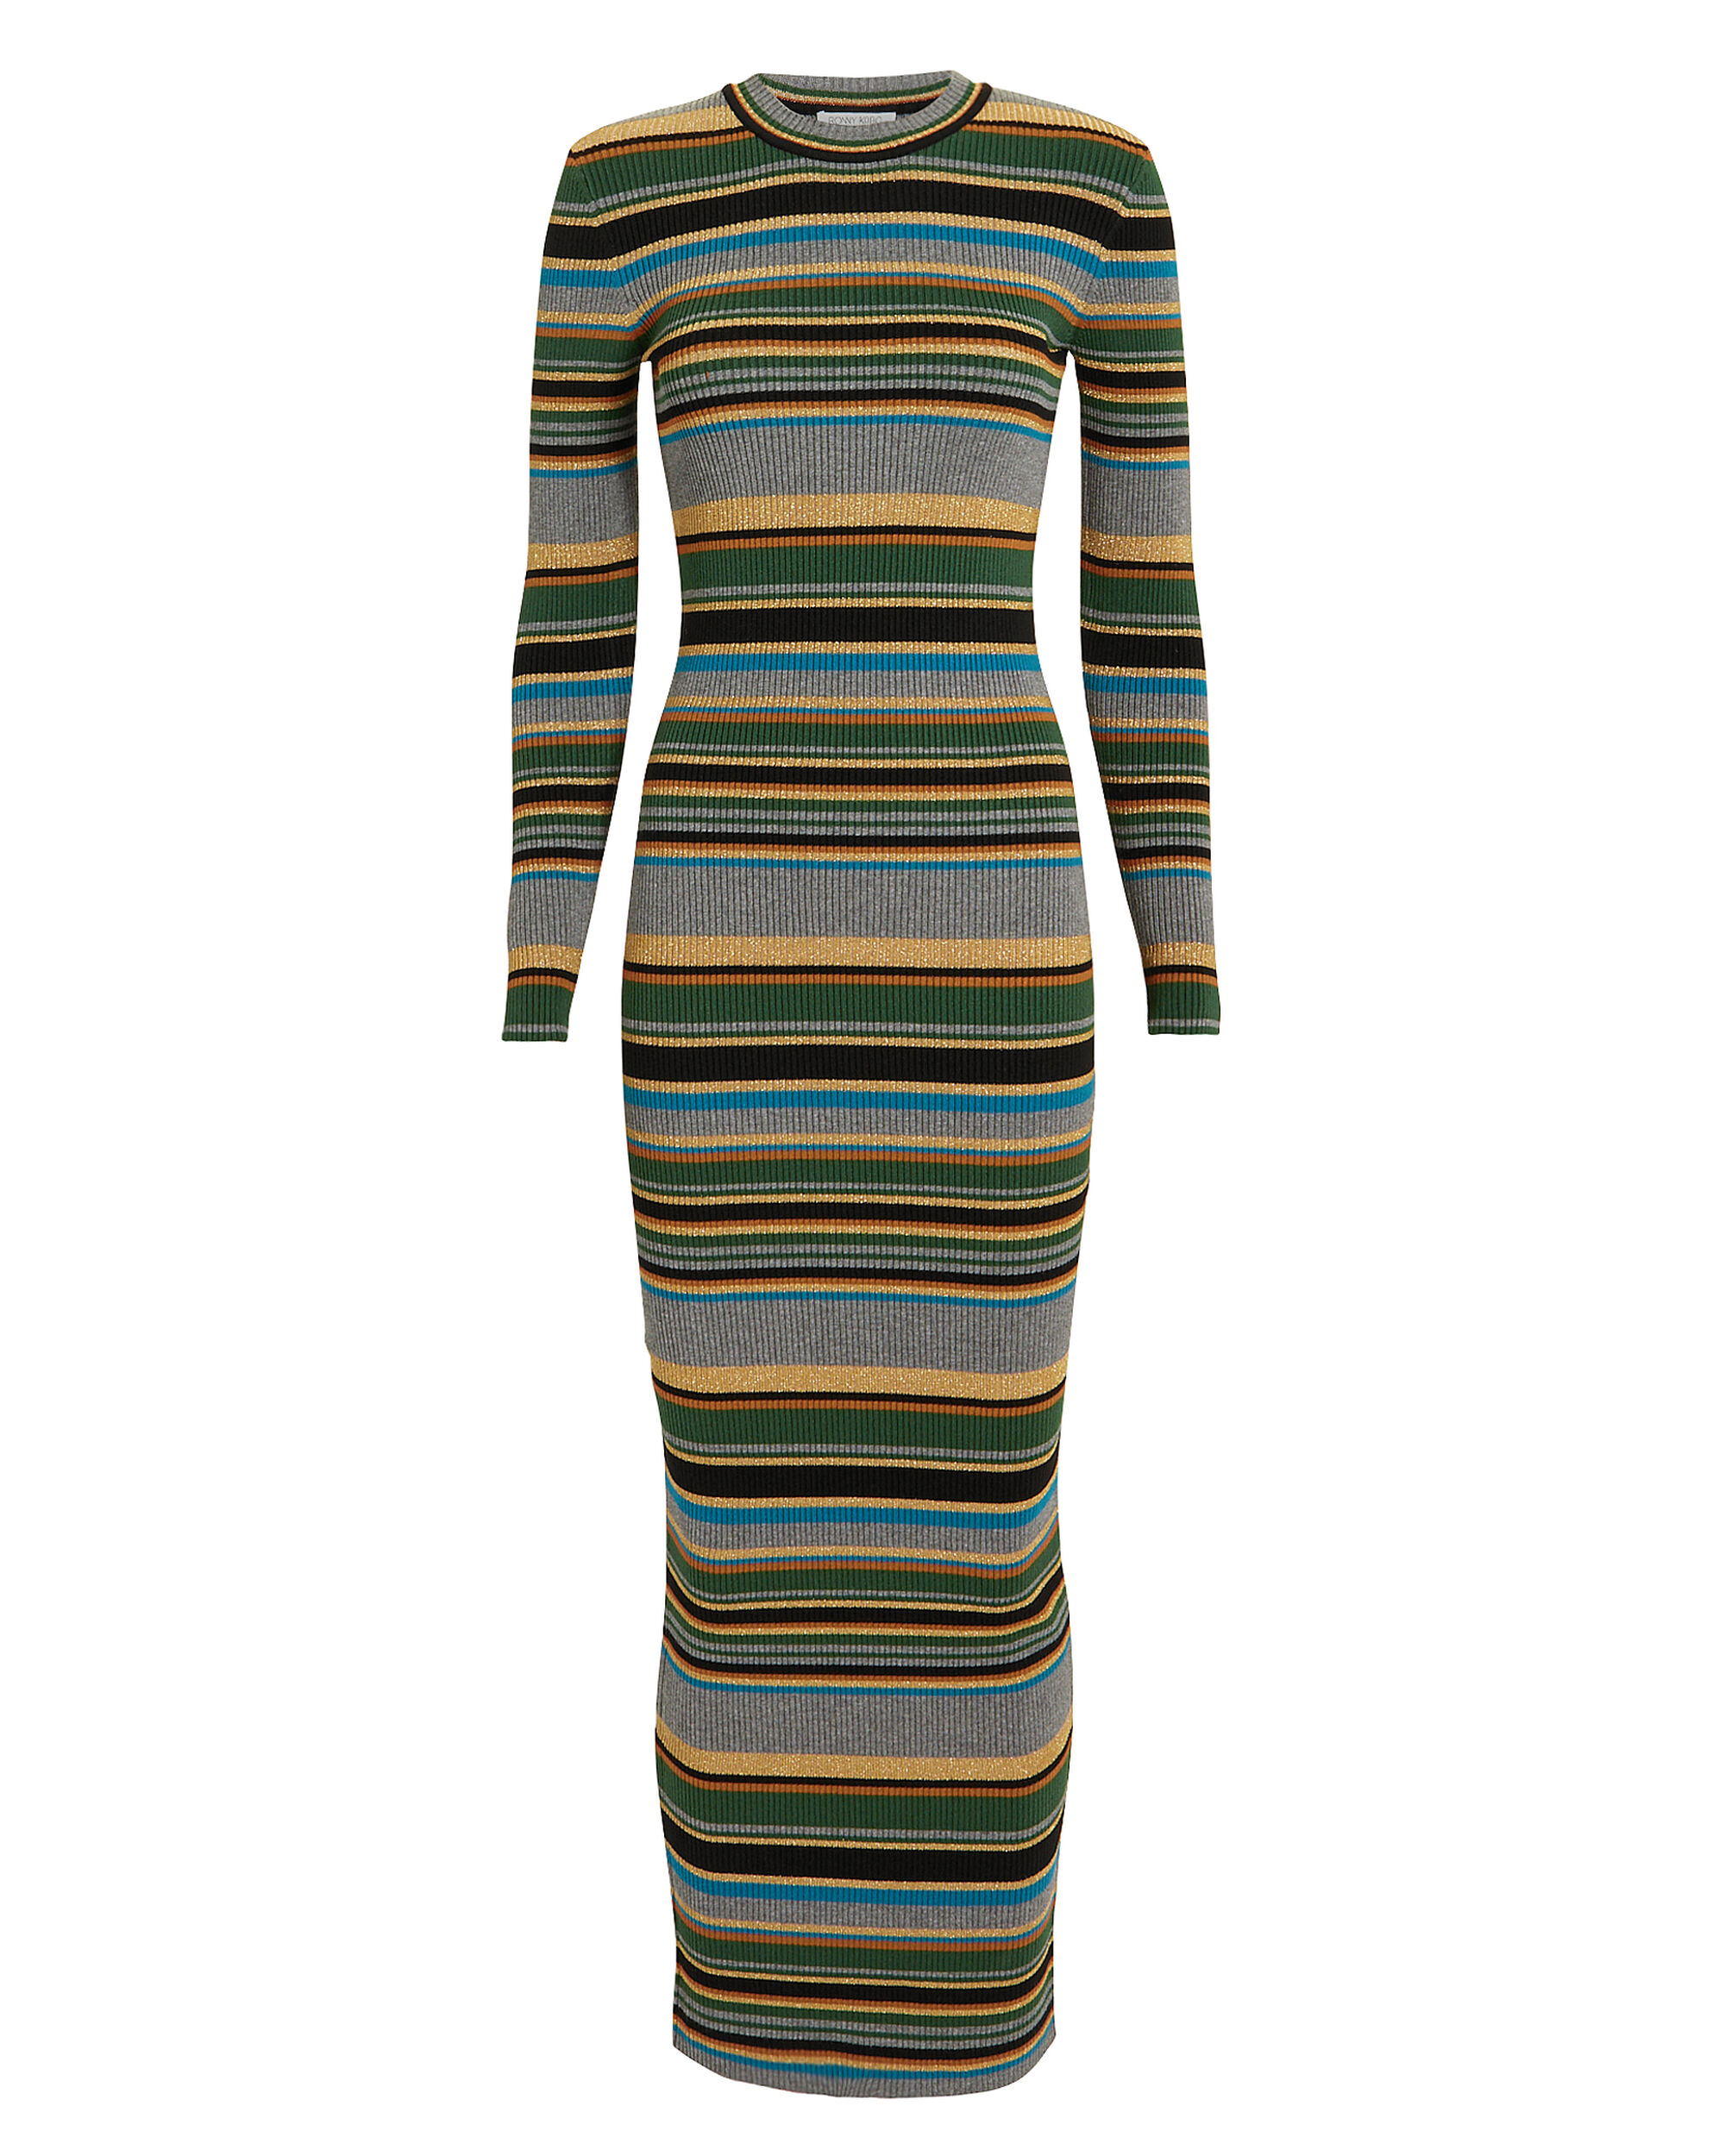 Tilda Striped Dress, GREY/BLACK/GOLD, hi-res